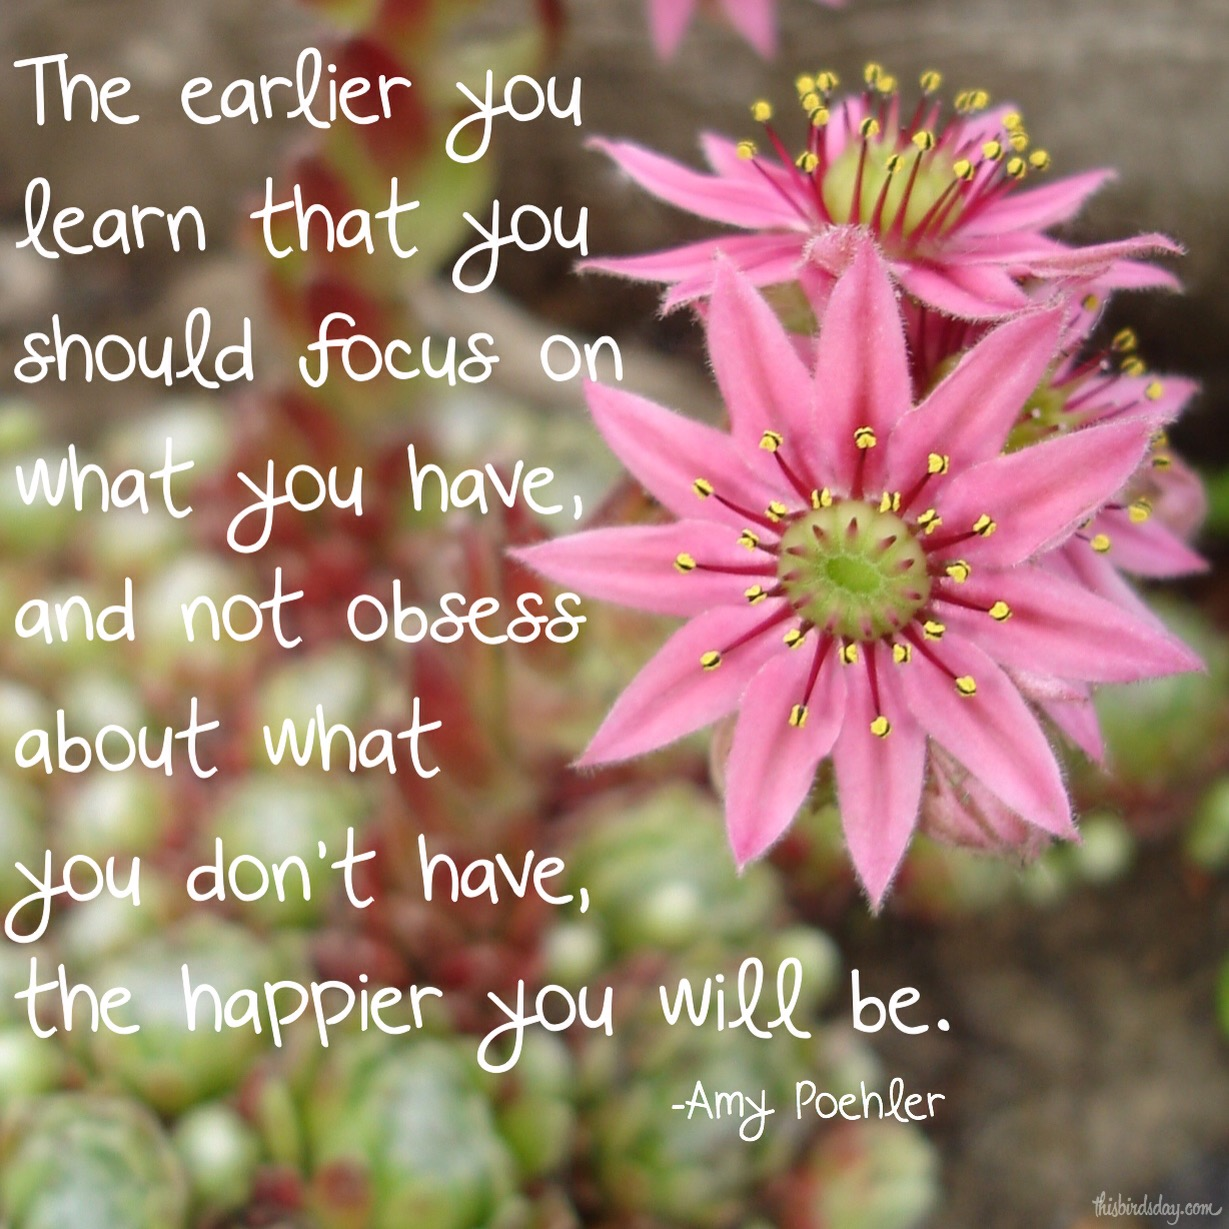 """The earlier you learn that you should focus on what you have, and not obsess about what you don't have, the happier you will be."" Amy Poehler Photo copyright Sheri Landry"